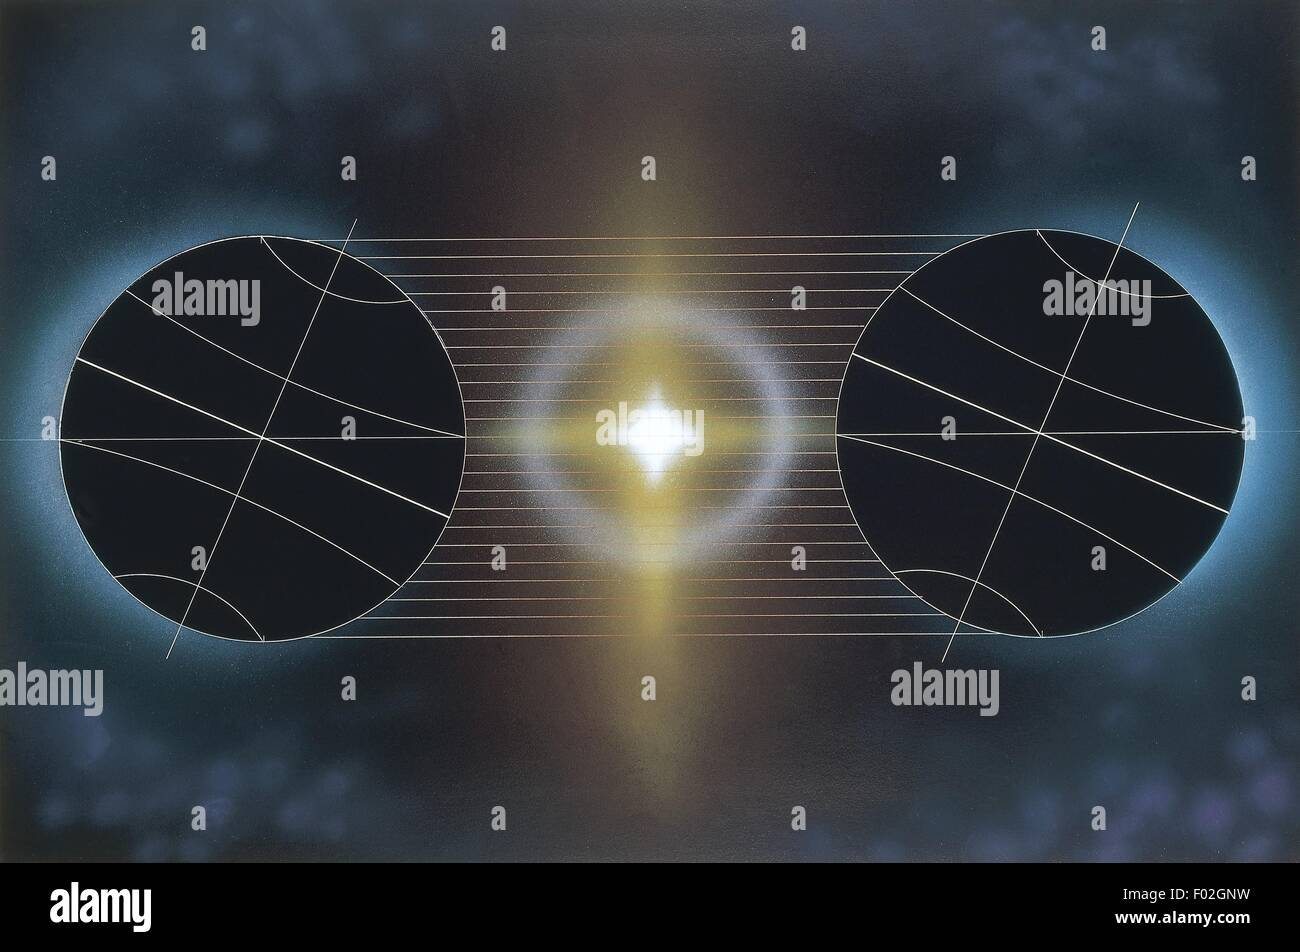 Astronomy - Different exposure of the earth to the sun's rays during solstices. Illustration - Stock Image